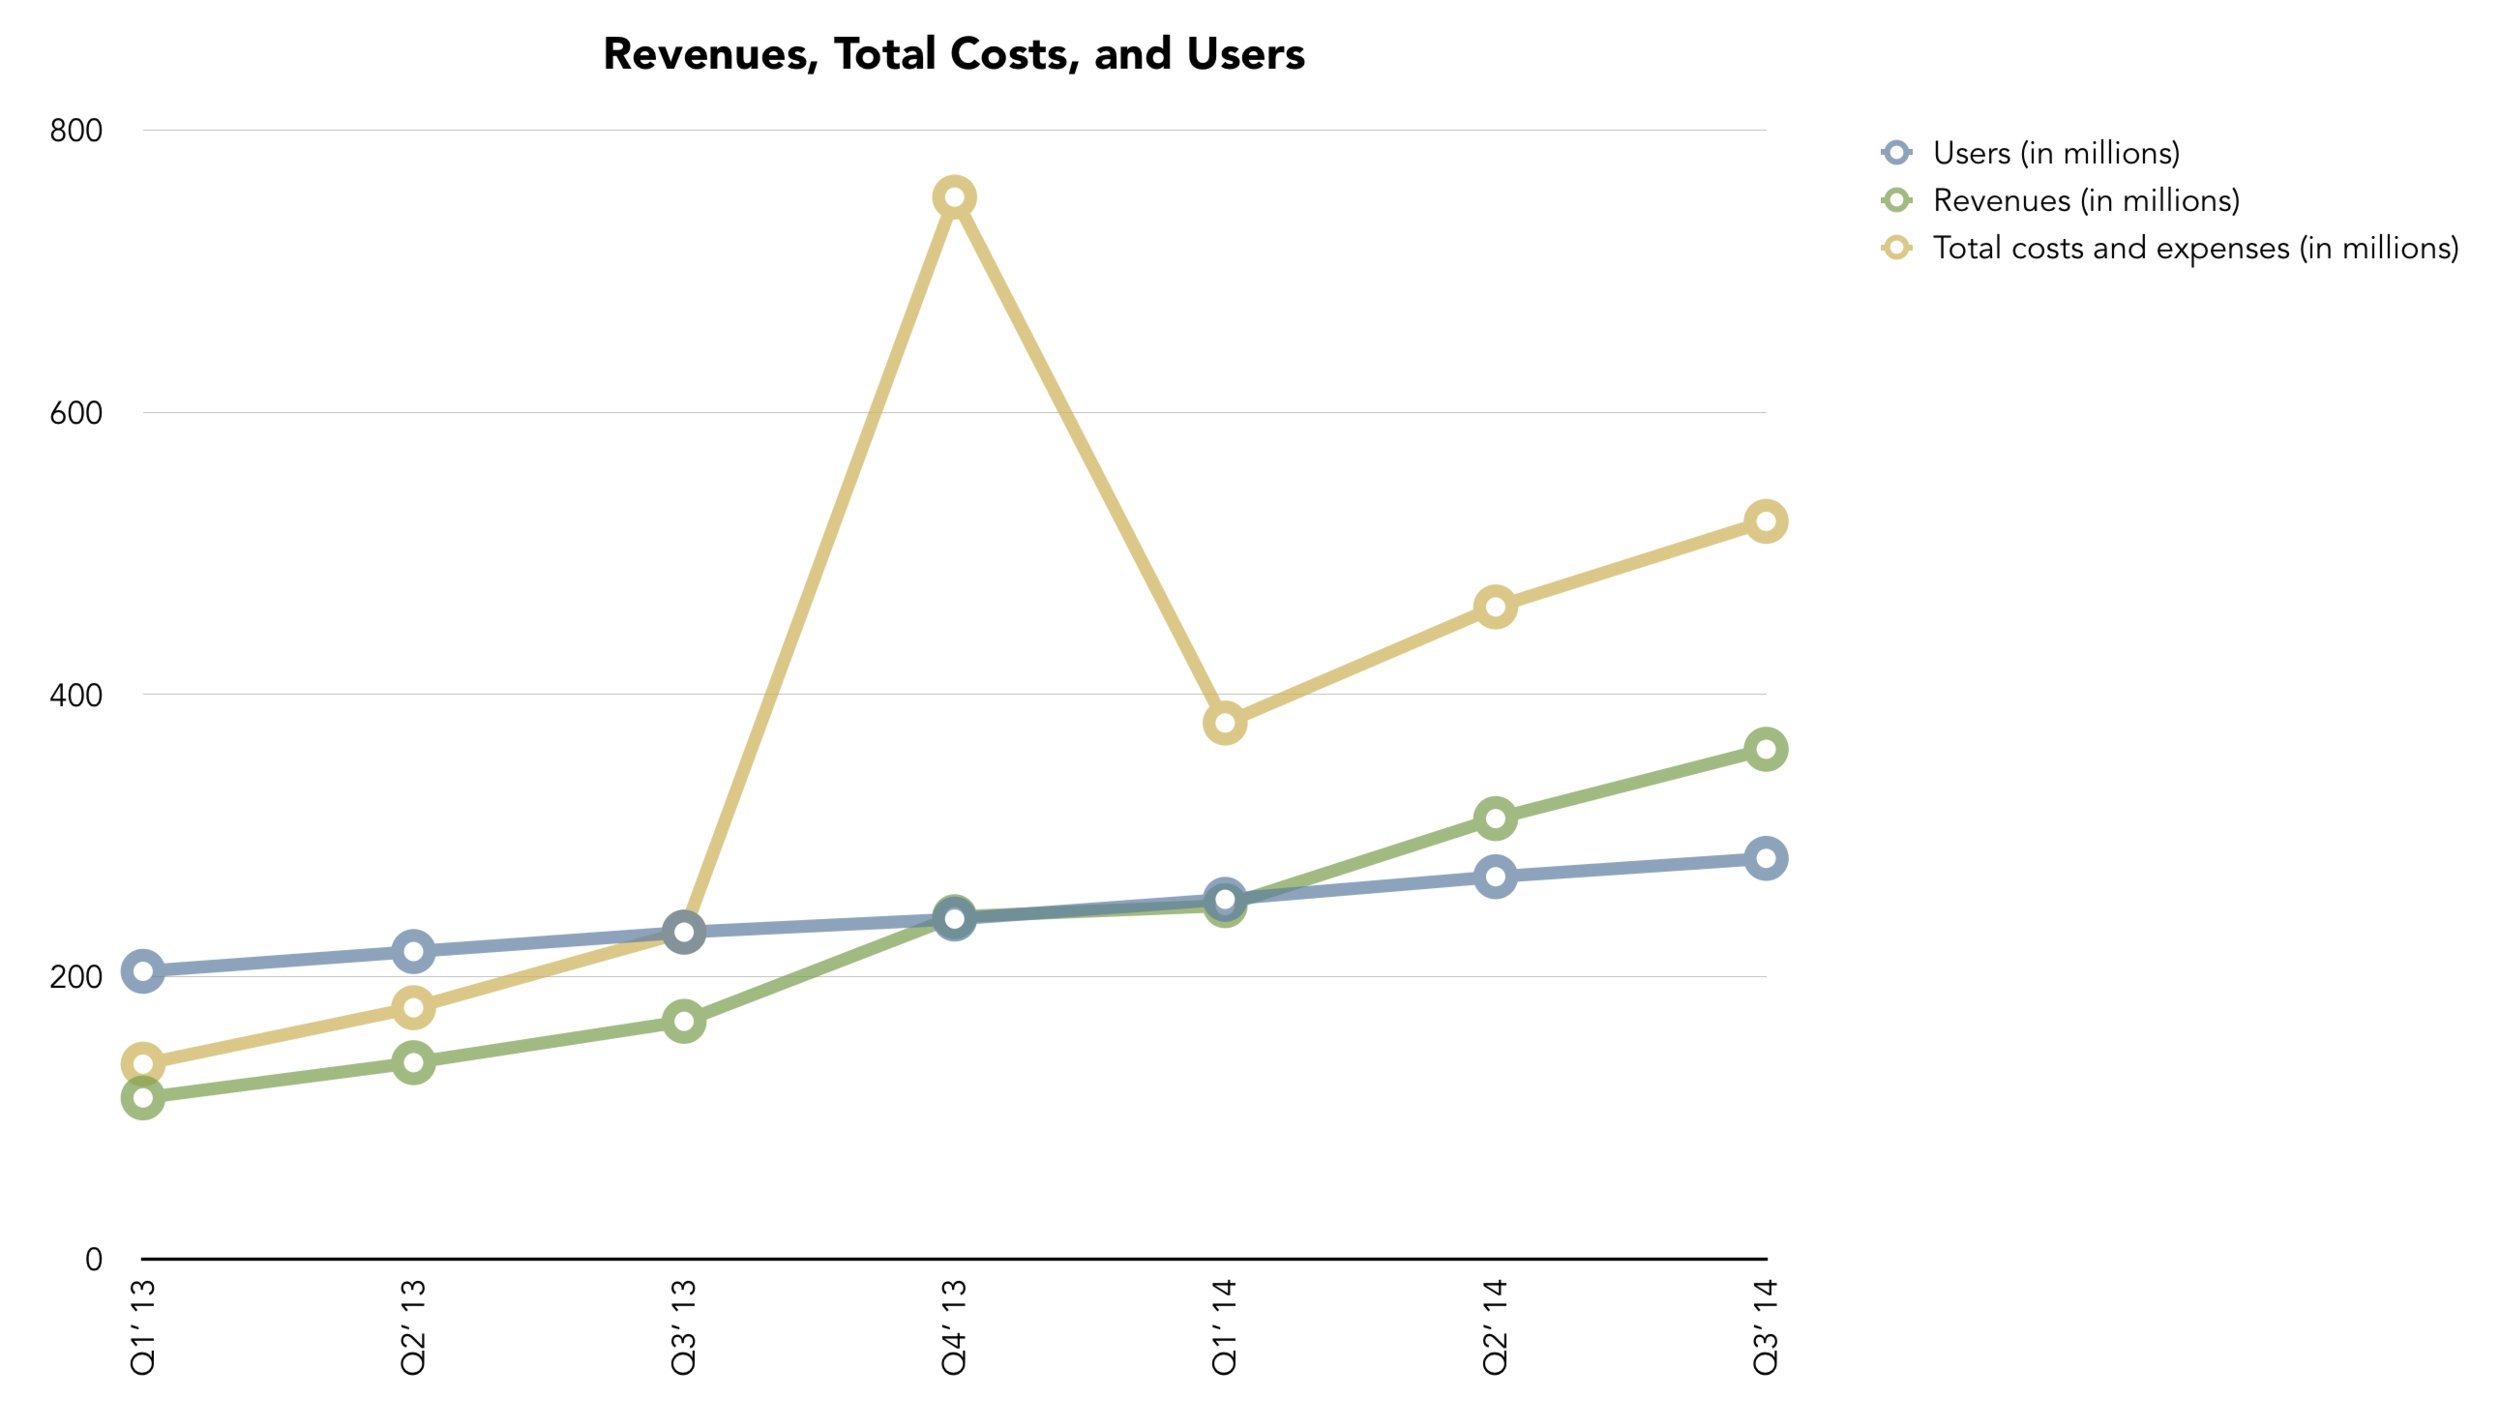 Revenues, Total Costs, and Users